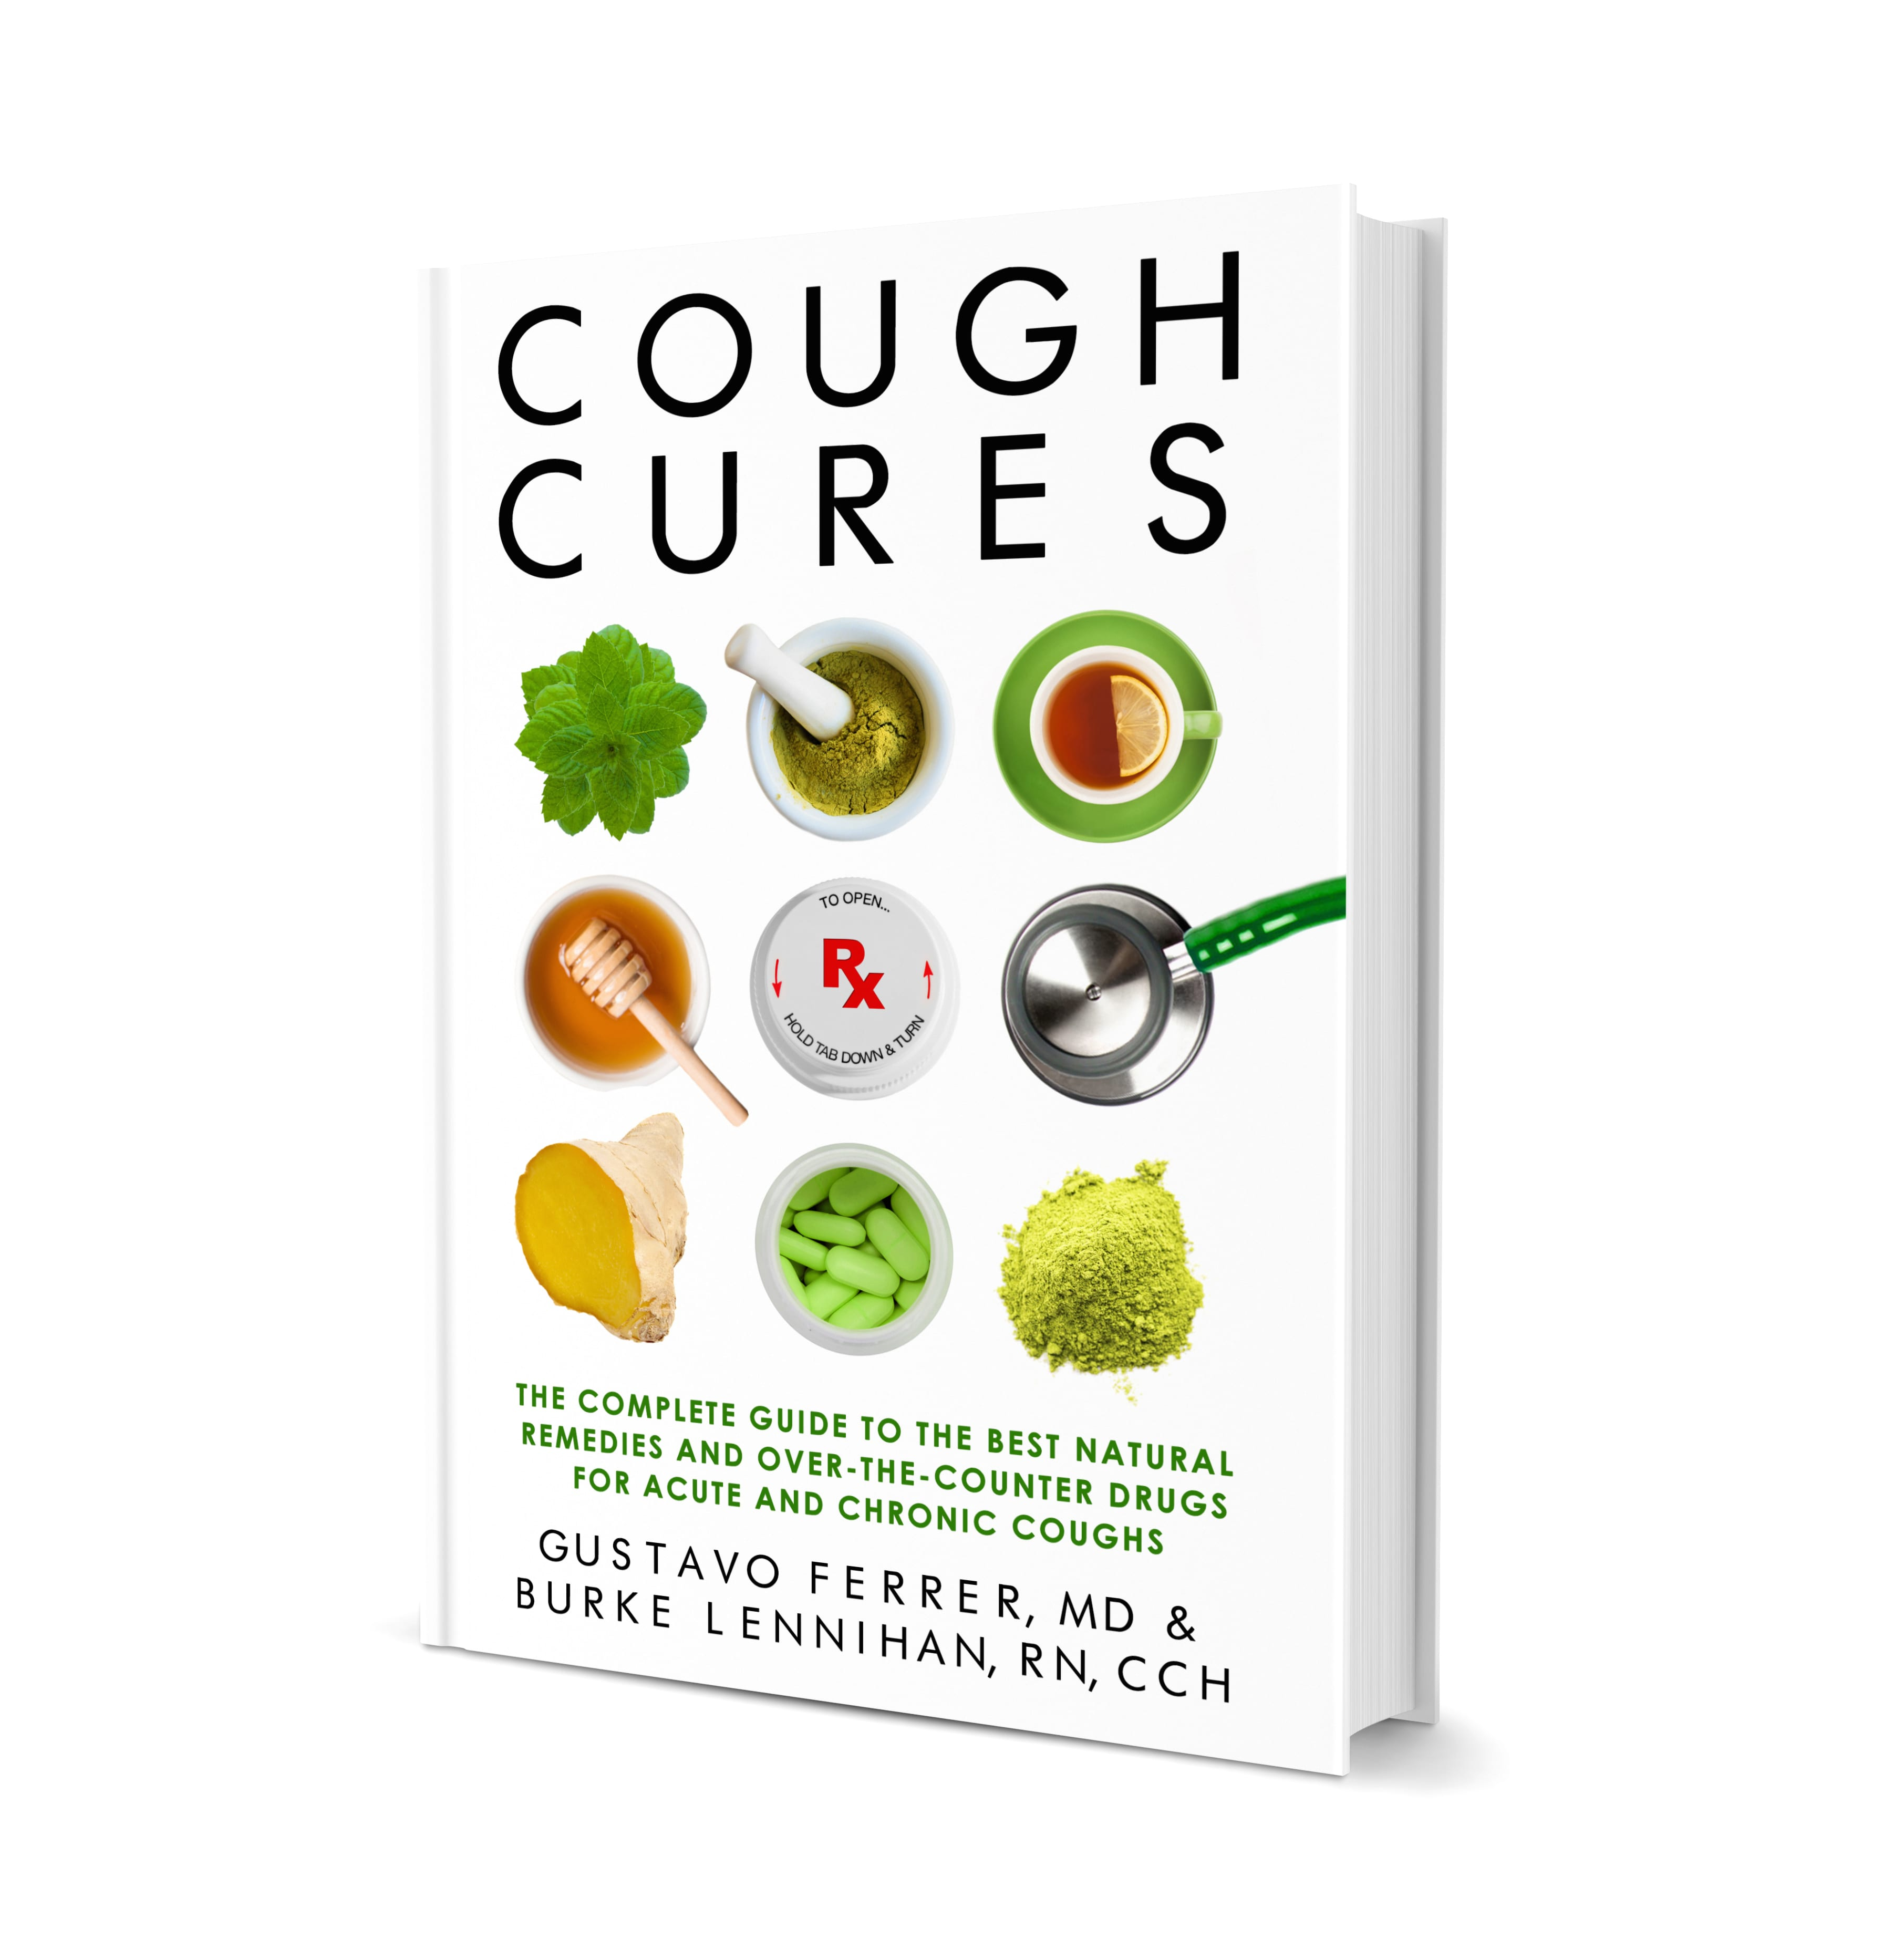 Facultys book offers respiratory respite the current clinical assistant professor at the college of osteopathic medicine introduces western medicine to the world in his new book cough cures a guide to fandeluxe Image collections